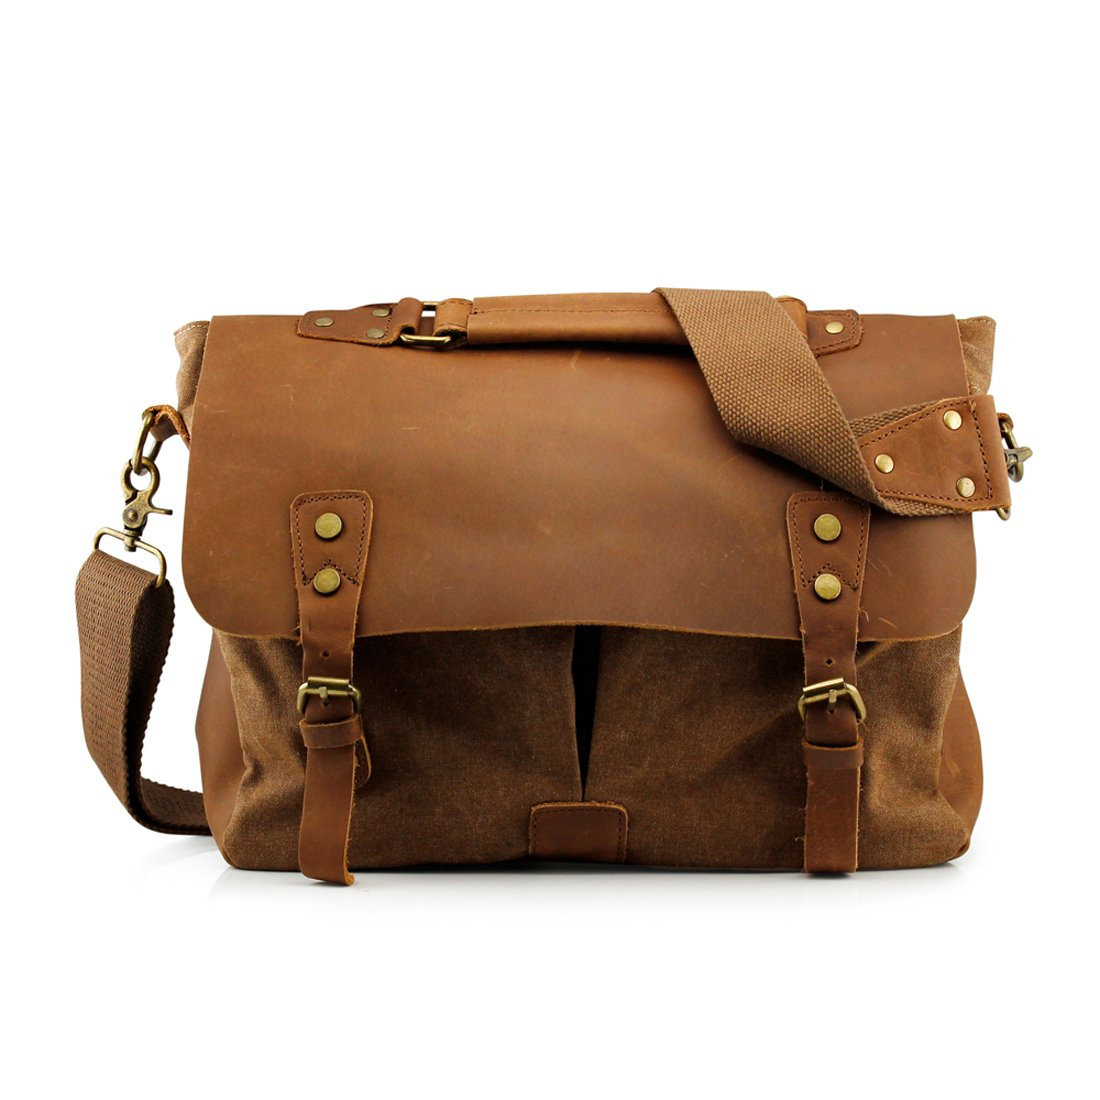 2379d4a6dc2e Amazon.com  GEARONIC TM Men s Vintage Canvas Leather Messenger Bag Satchel  School Military Shoulder Travel Bag for Notebook Laptop Macbook 11 and 13  inch ...